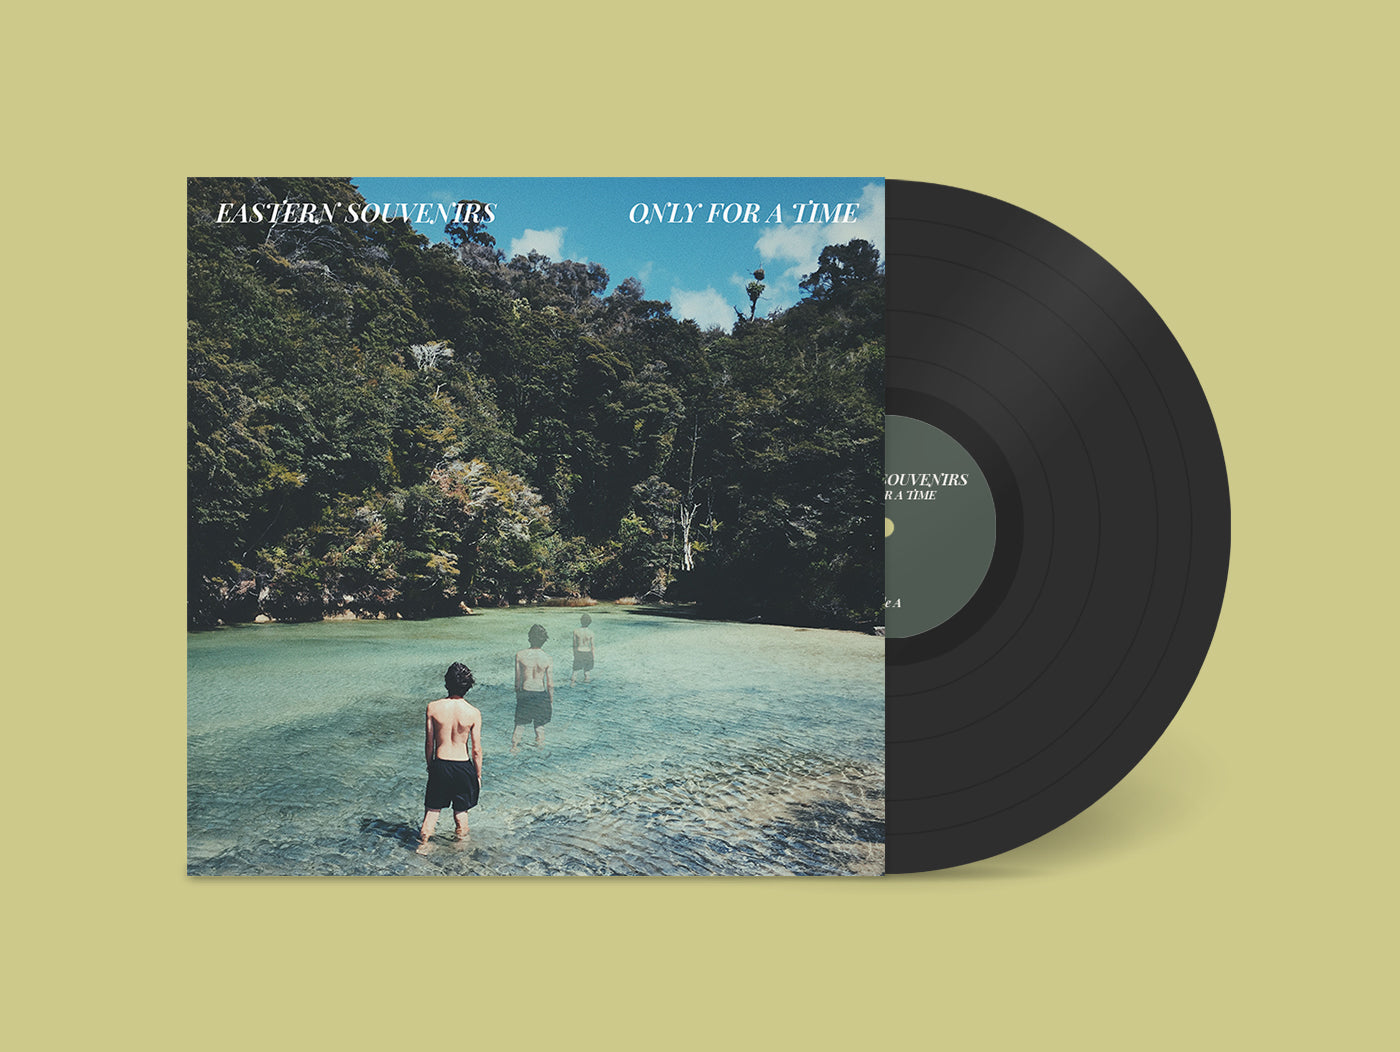 Eastern Souvenirs Only for a Time LP